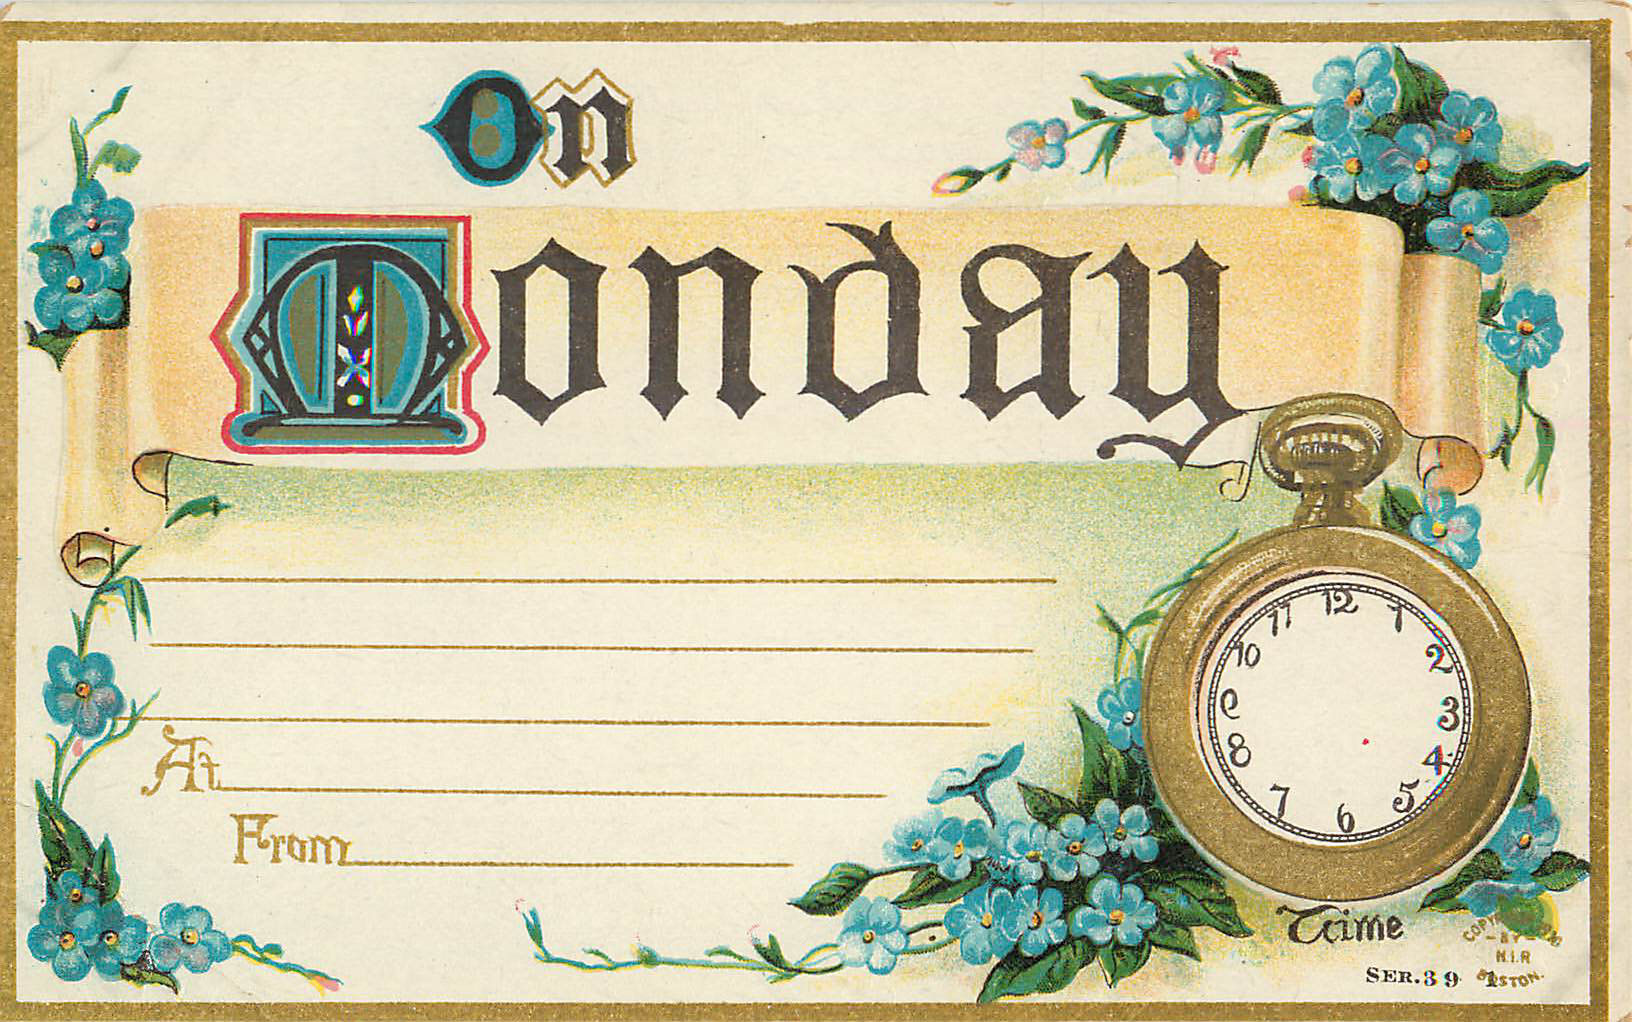 On Monday - Appointment Card